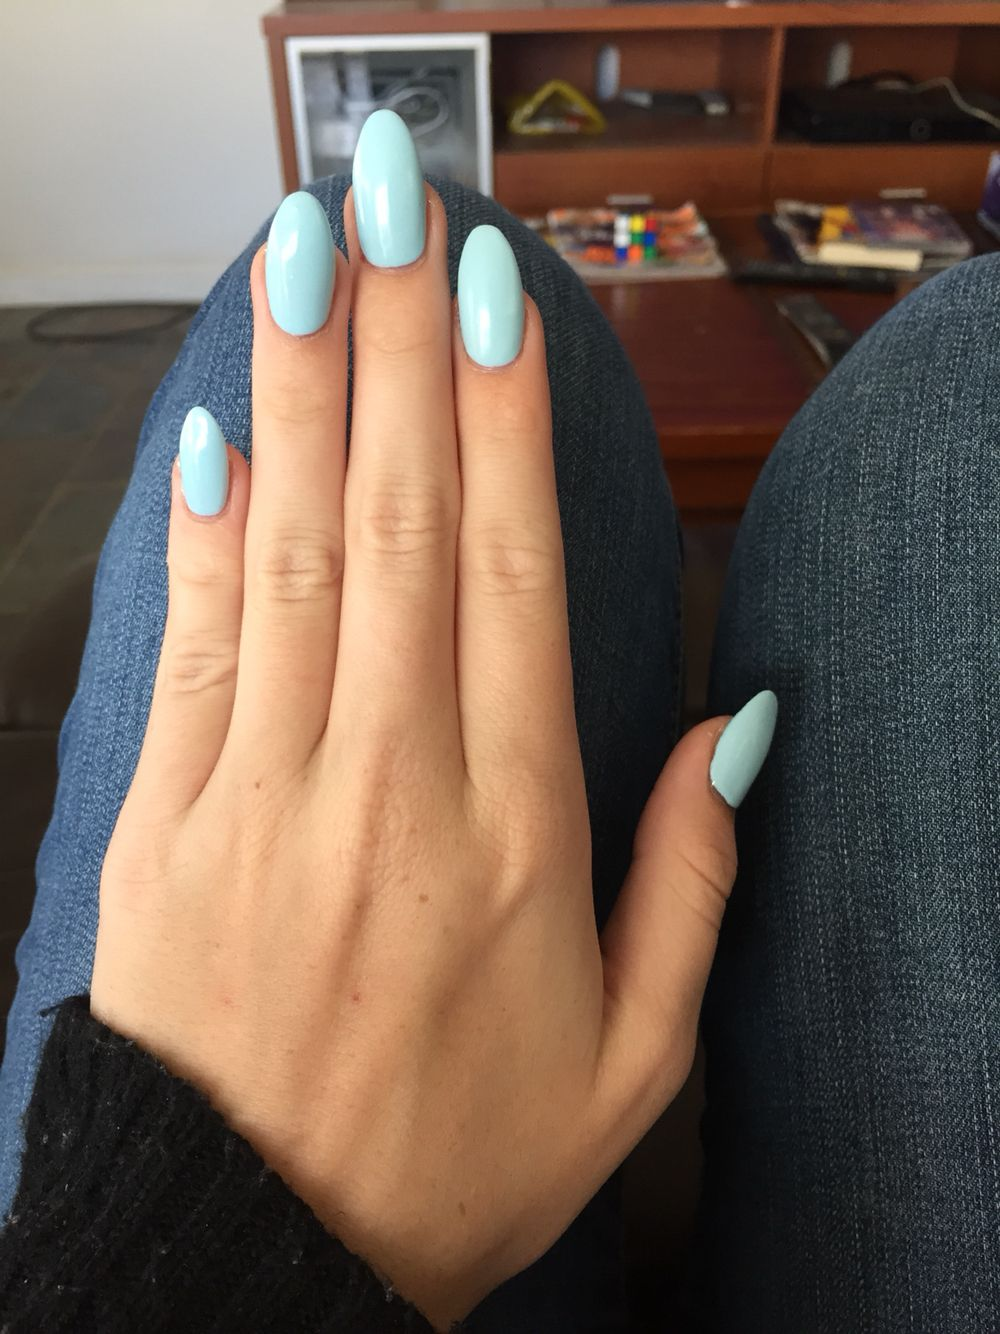 New Nails Almond Shape With Baby Blue Shellac Blue Shellac Nails Almond Shape Nails Oval Nails Designs